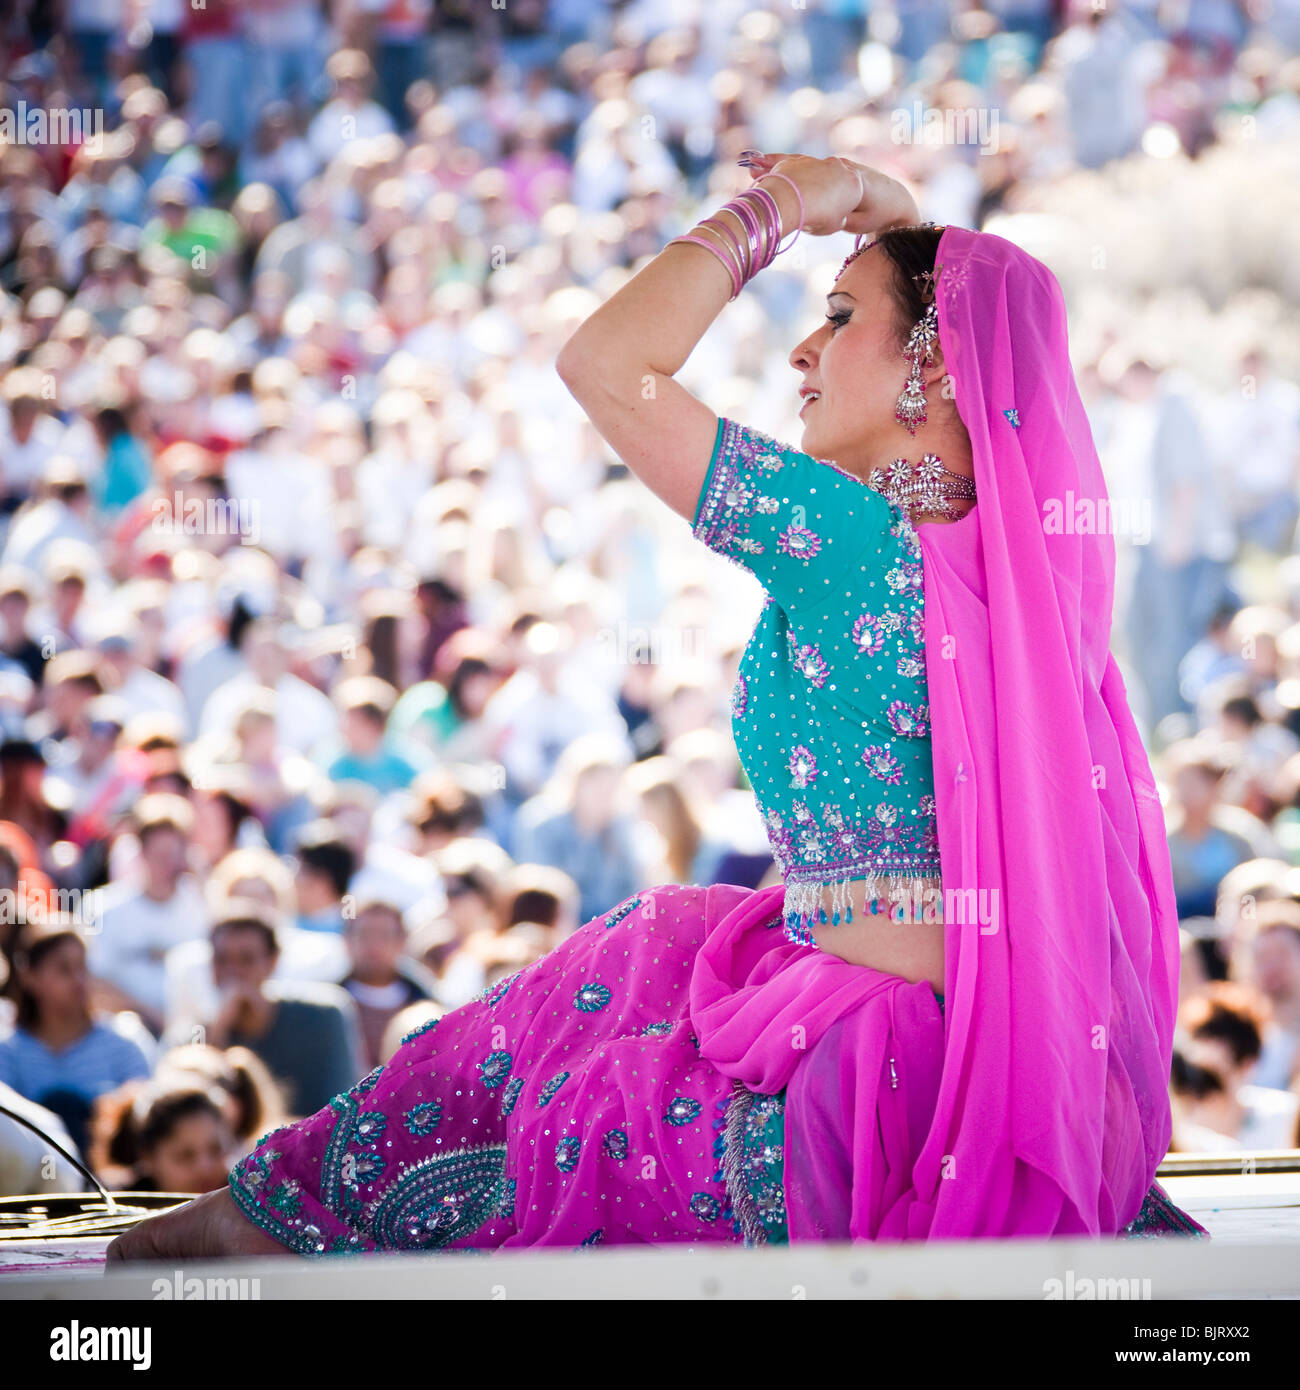 USA, Utah, Spanish Fork, mid adult dancer in traditional clothing performing on stage - Stock Image